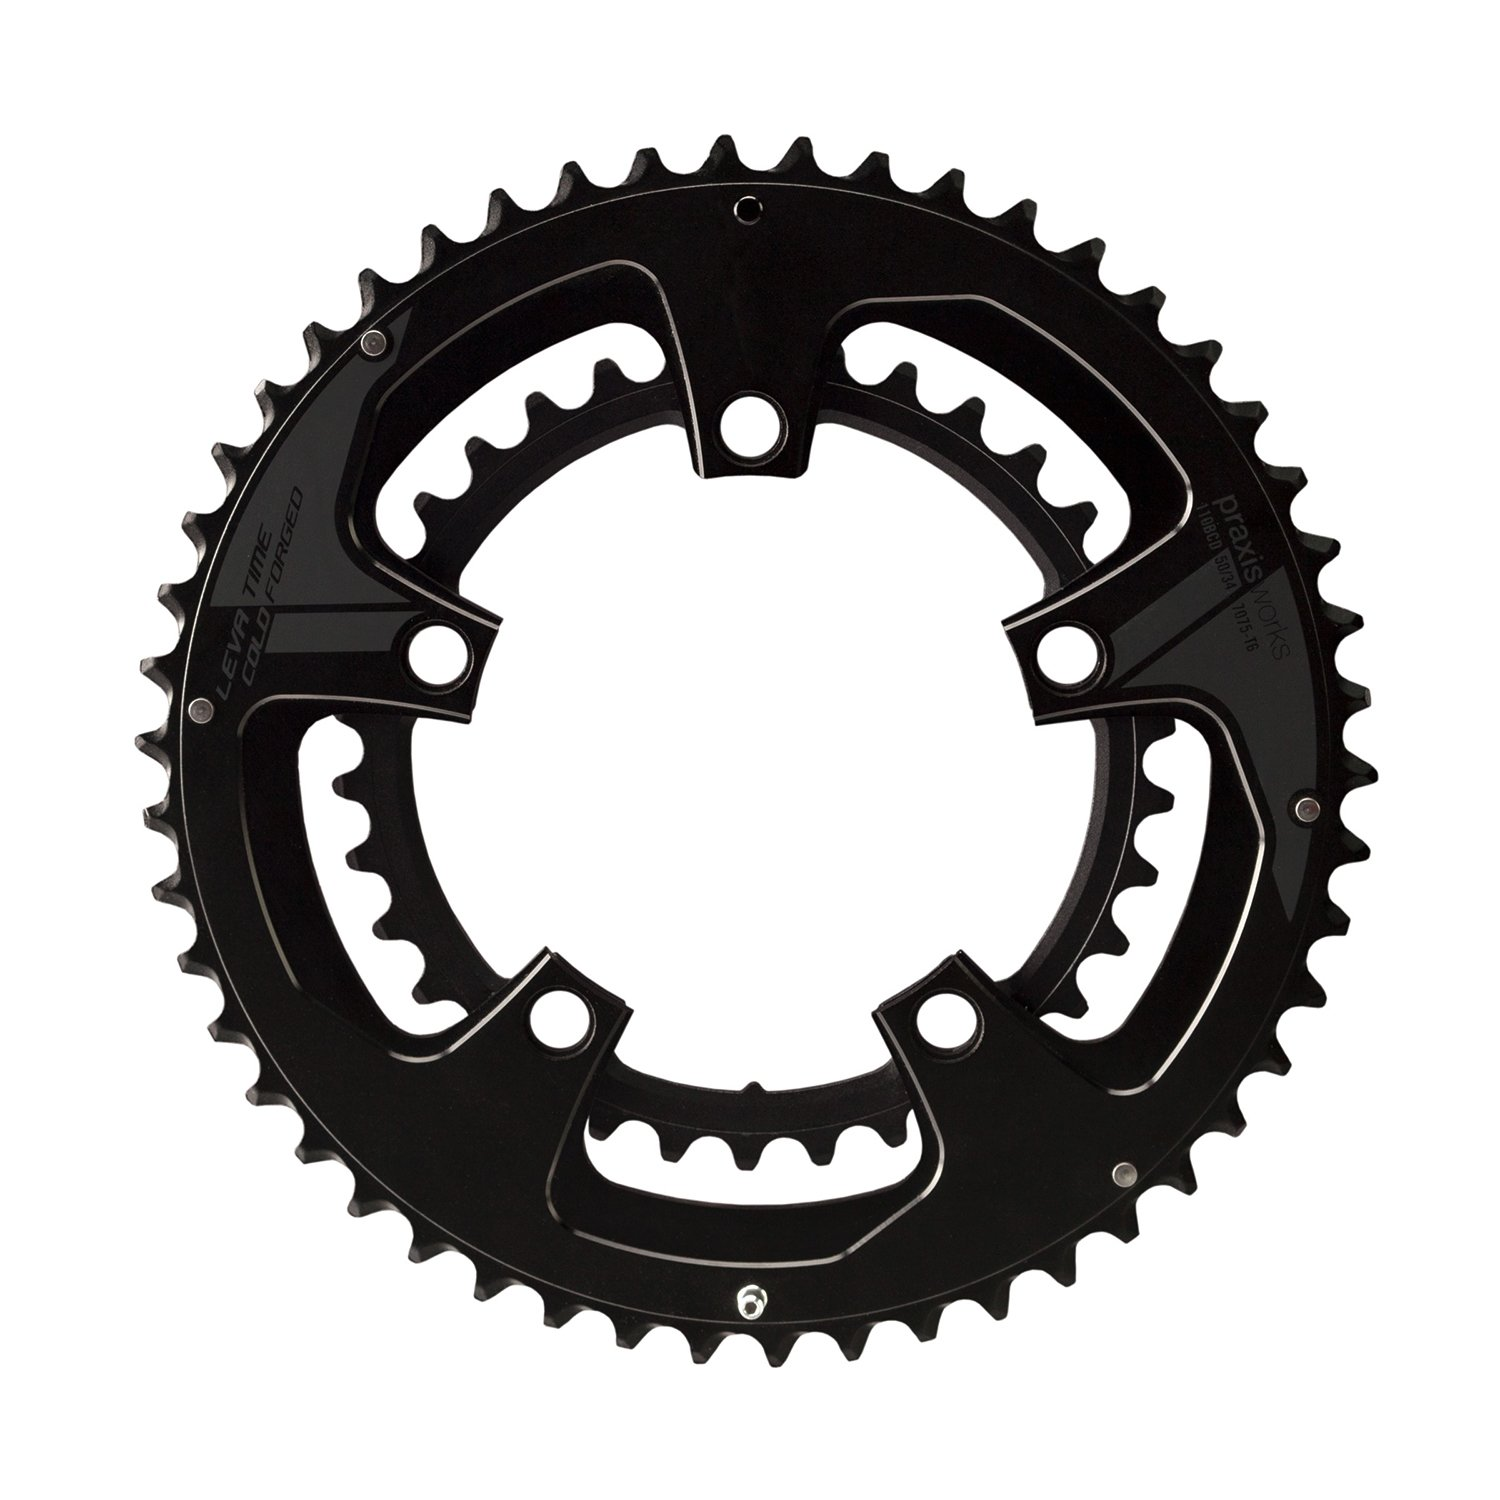 Praxis Works Buzz Road 53 / 39t 130-bcd Chainring B077Q43739